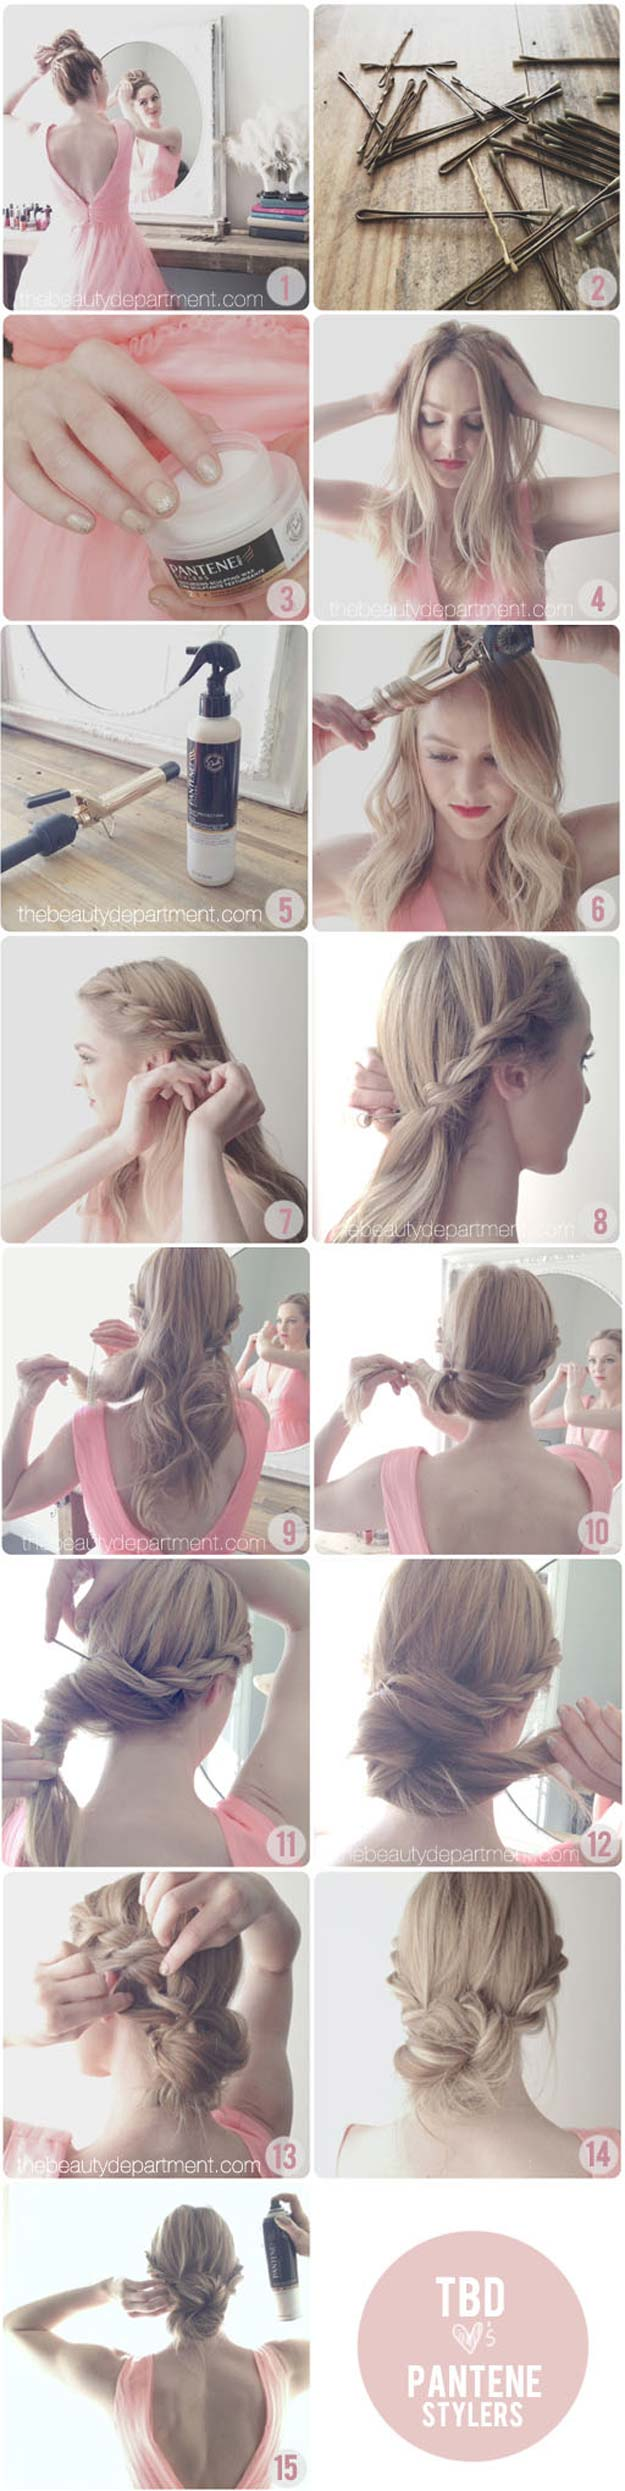 Best Hair Braiding Tutorials - Rop Braid Chignon - Easy Step by Step Tutorials for Braids - How To Braid Fishtail, French Braids, Flower Crown, Side Braids, Cornrows, Updos - Cool Braided Hairstyles for Girls, Teens and Women - School, Day and Evening, Boho, Casual and Formal Looks http://diyprojectsforteens.com/hair-braiding-tutorials